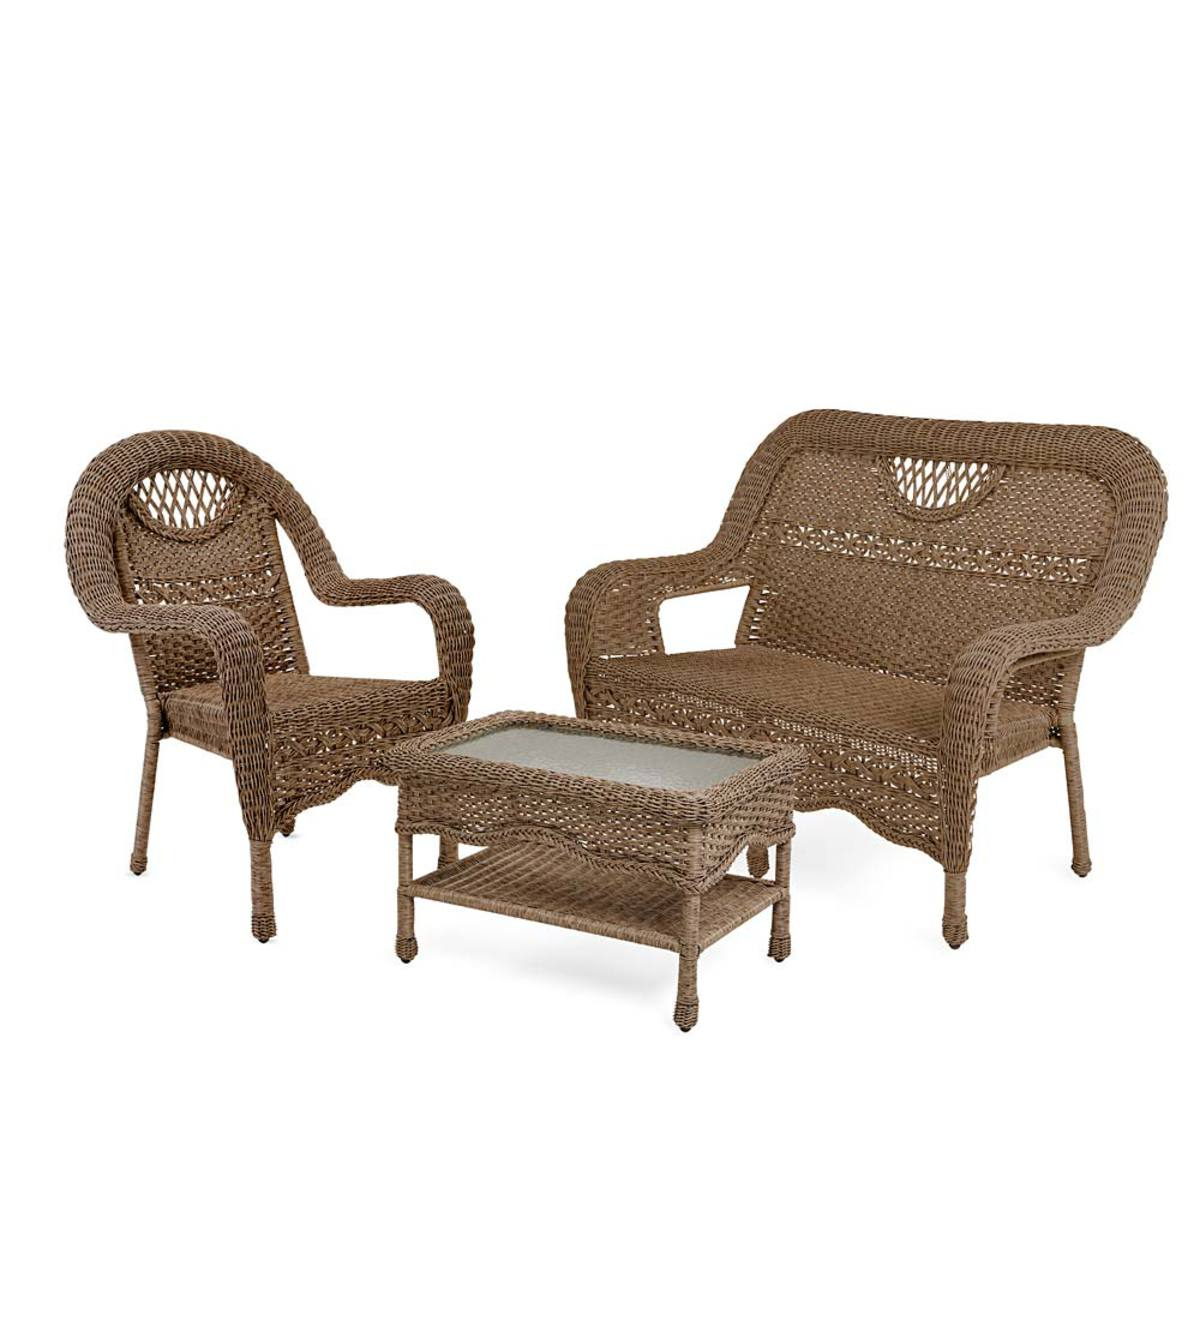 Prospect Hill Wicker Settee Benches For Well Known Prospect Hill Wicker Settee, Chair And Coffee Table Set (View 13 of 20)